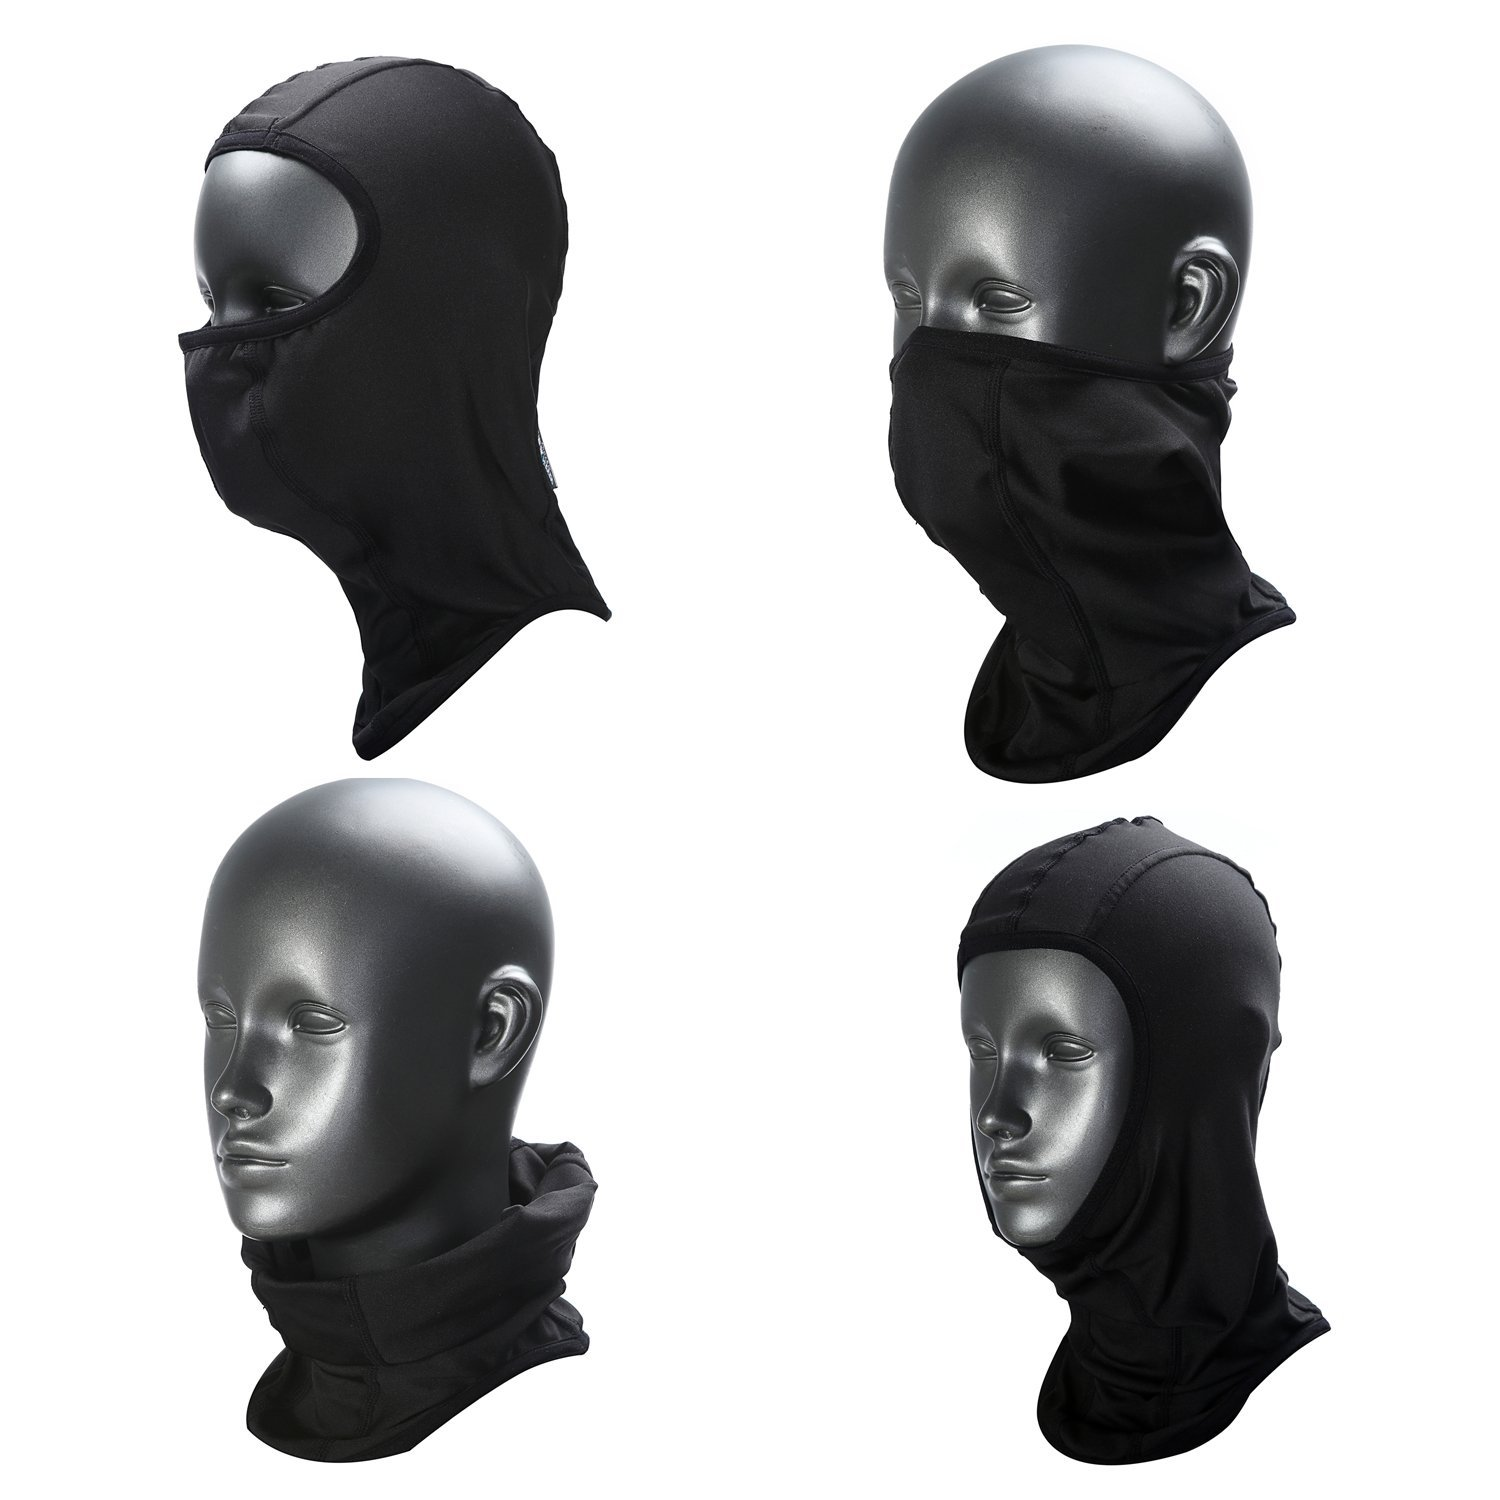 Weanas Thermal Fleece Balaclava Sports Face Mask Windproof Warm for Cycling Motorcycling Skiing Snowboarding Helmet 3090269